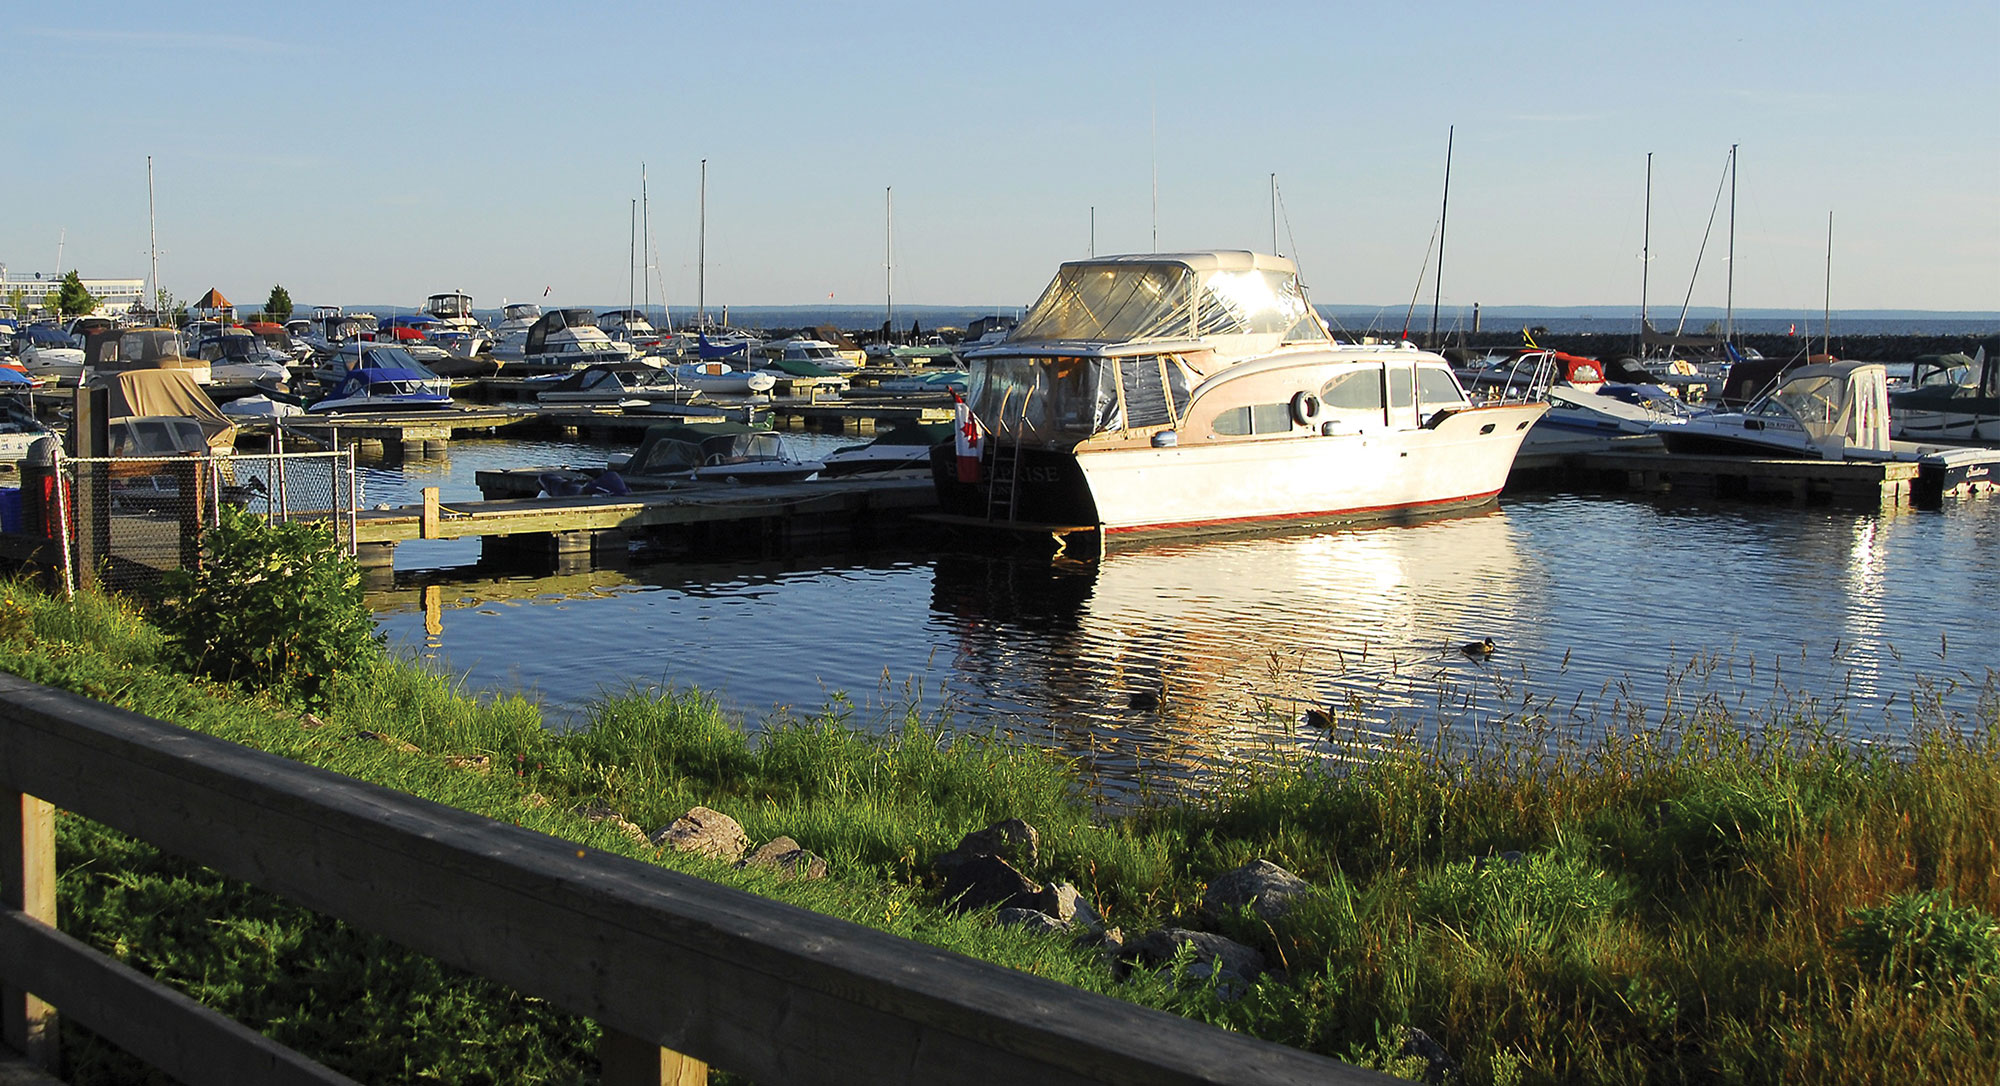 Boats at the North Bay Waterfront Marina